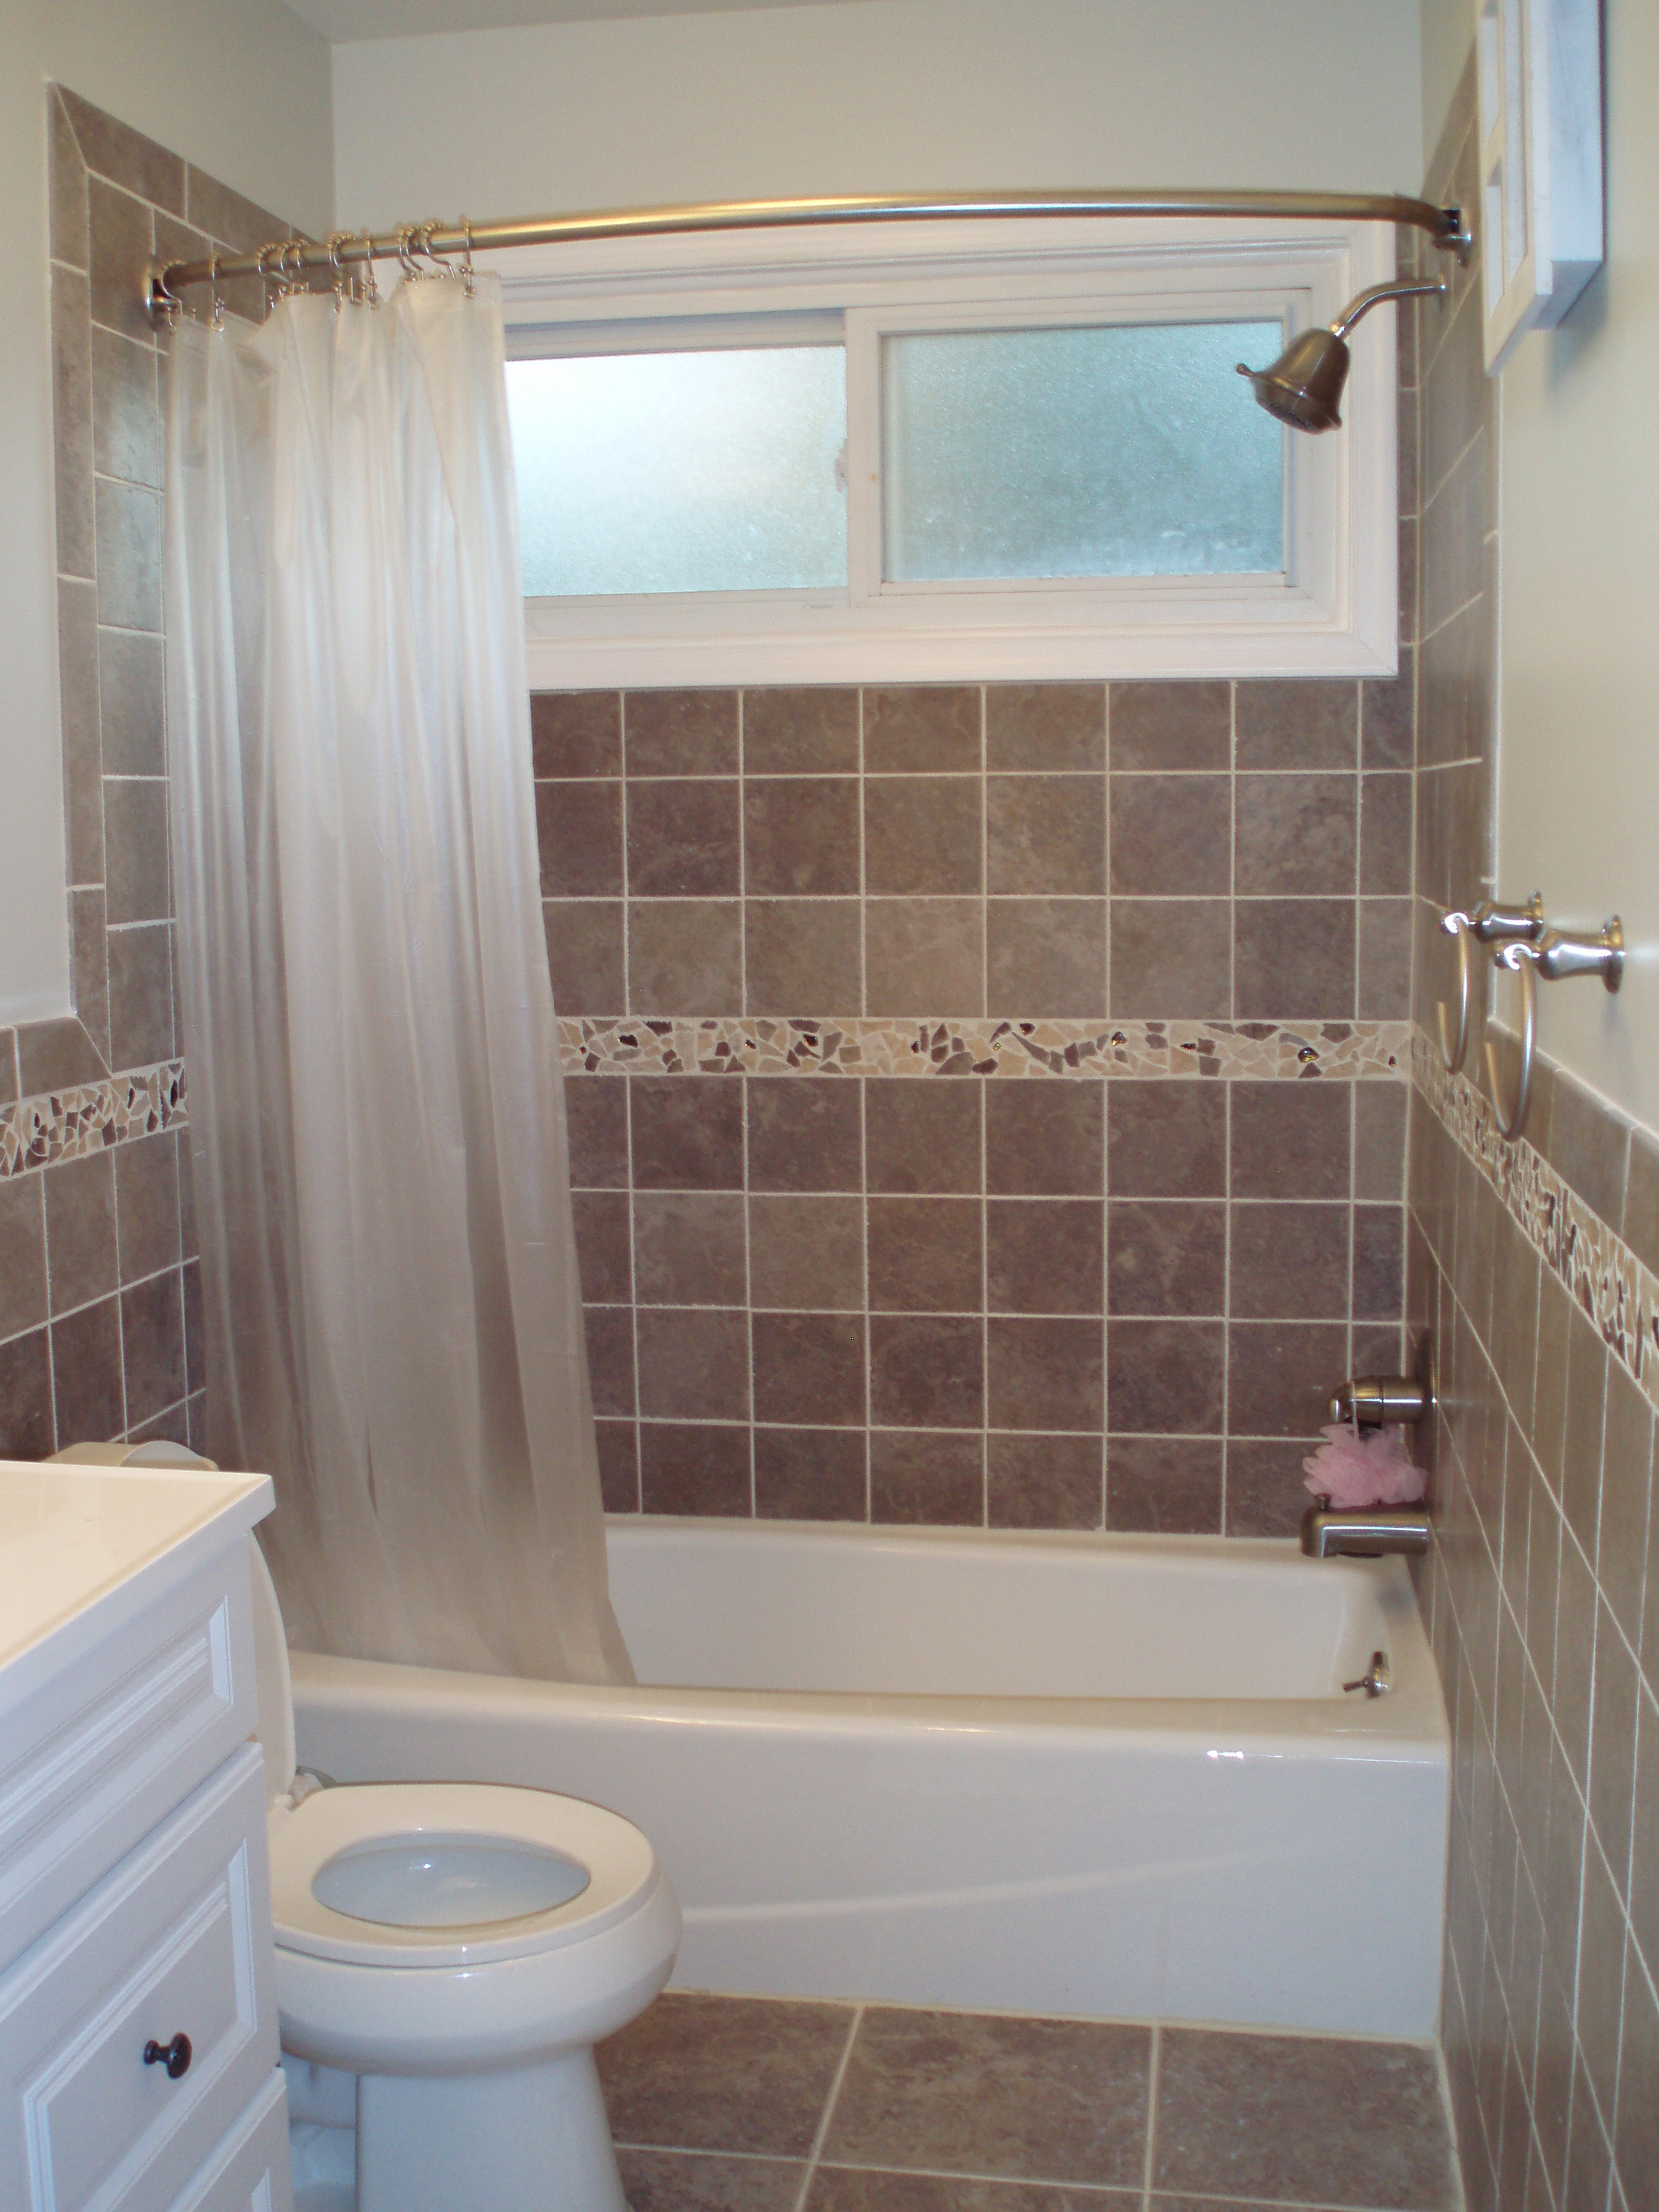 30 Best Small Bathroom Ideas on Small Space Small Bathroom Ideas With Tub And Shower id=39140